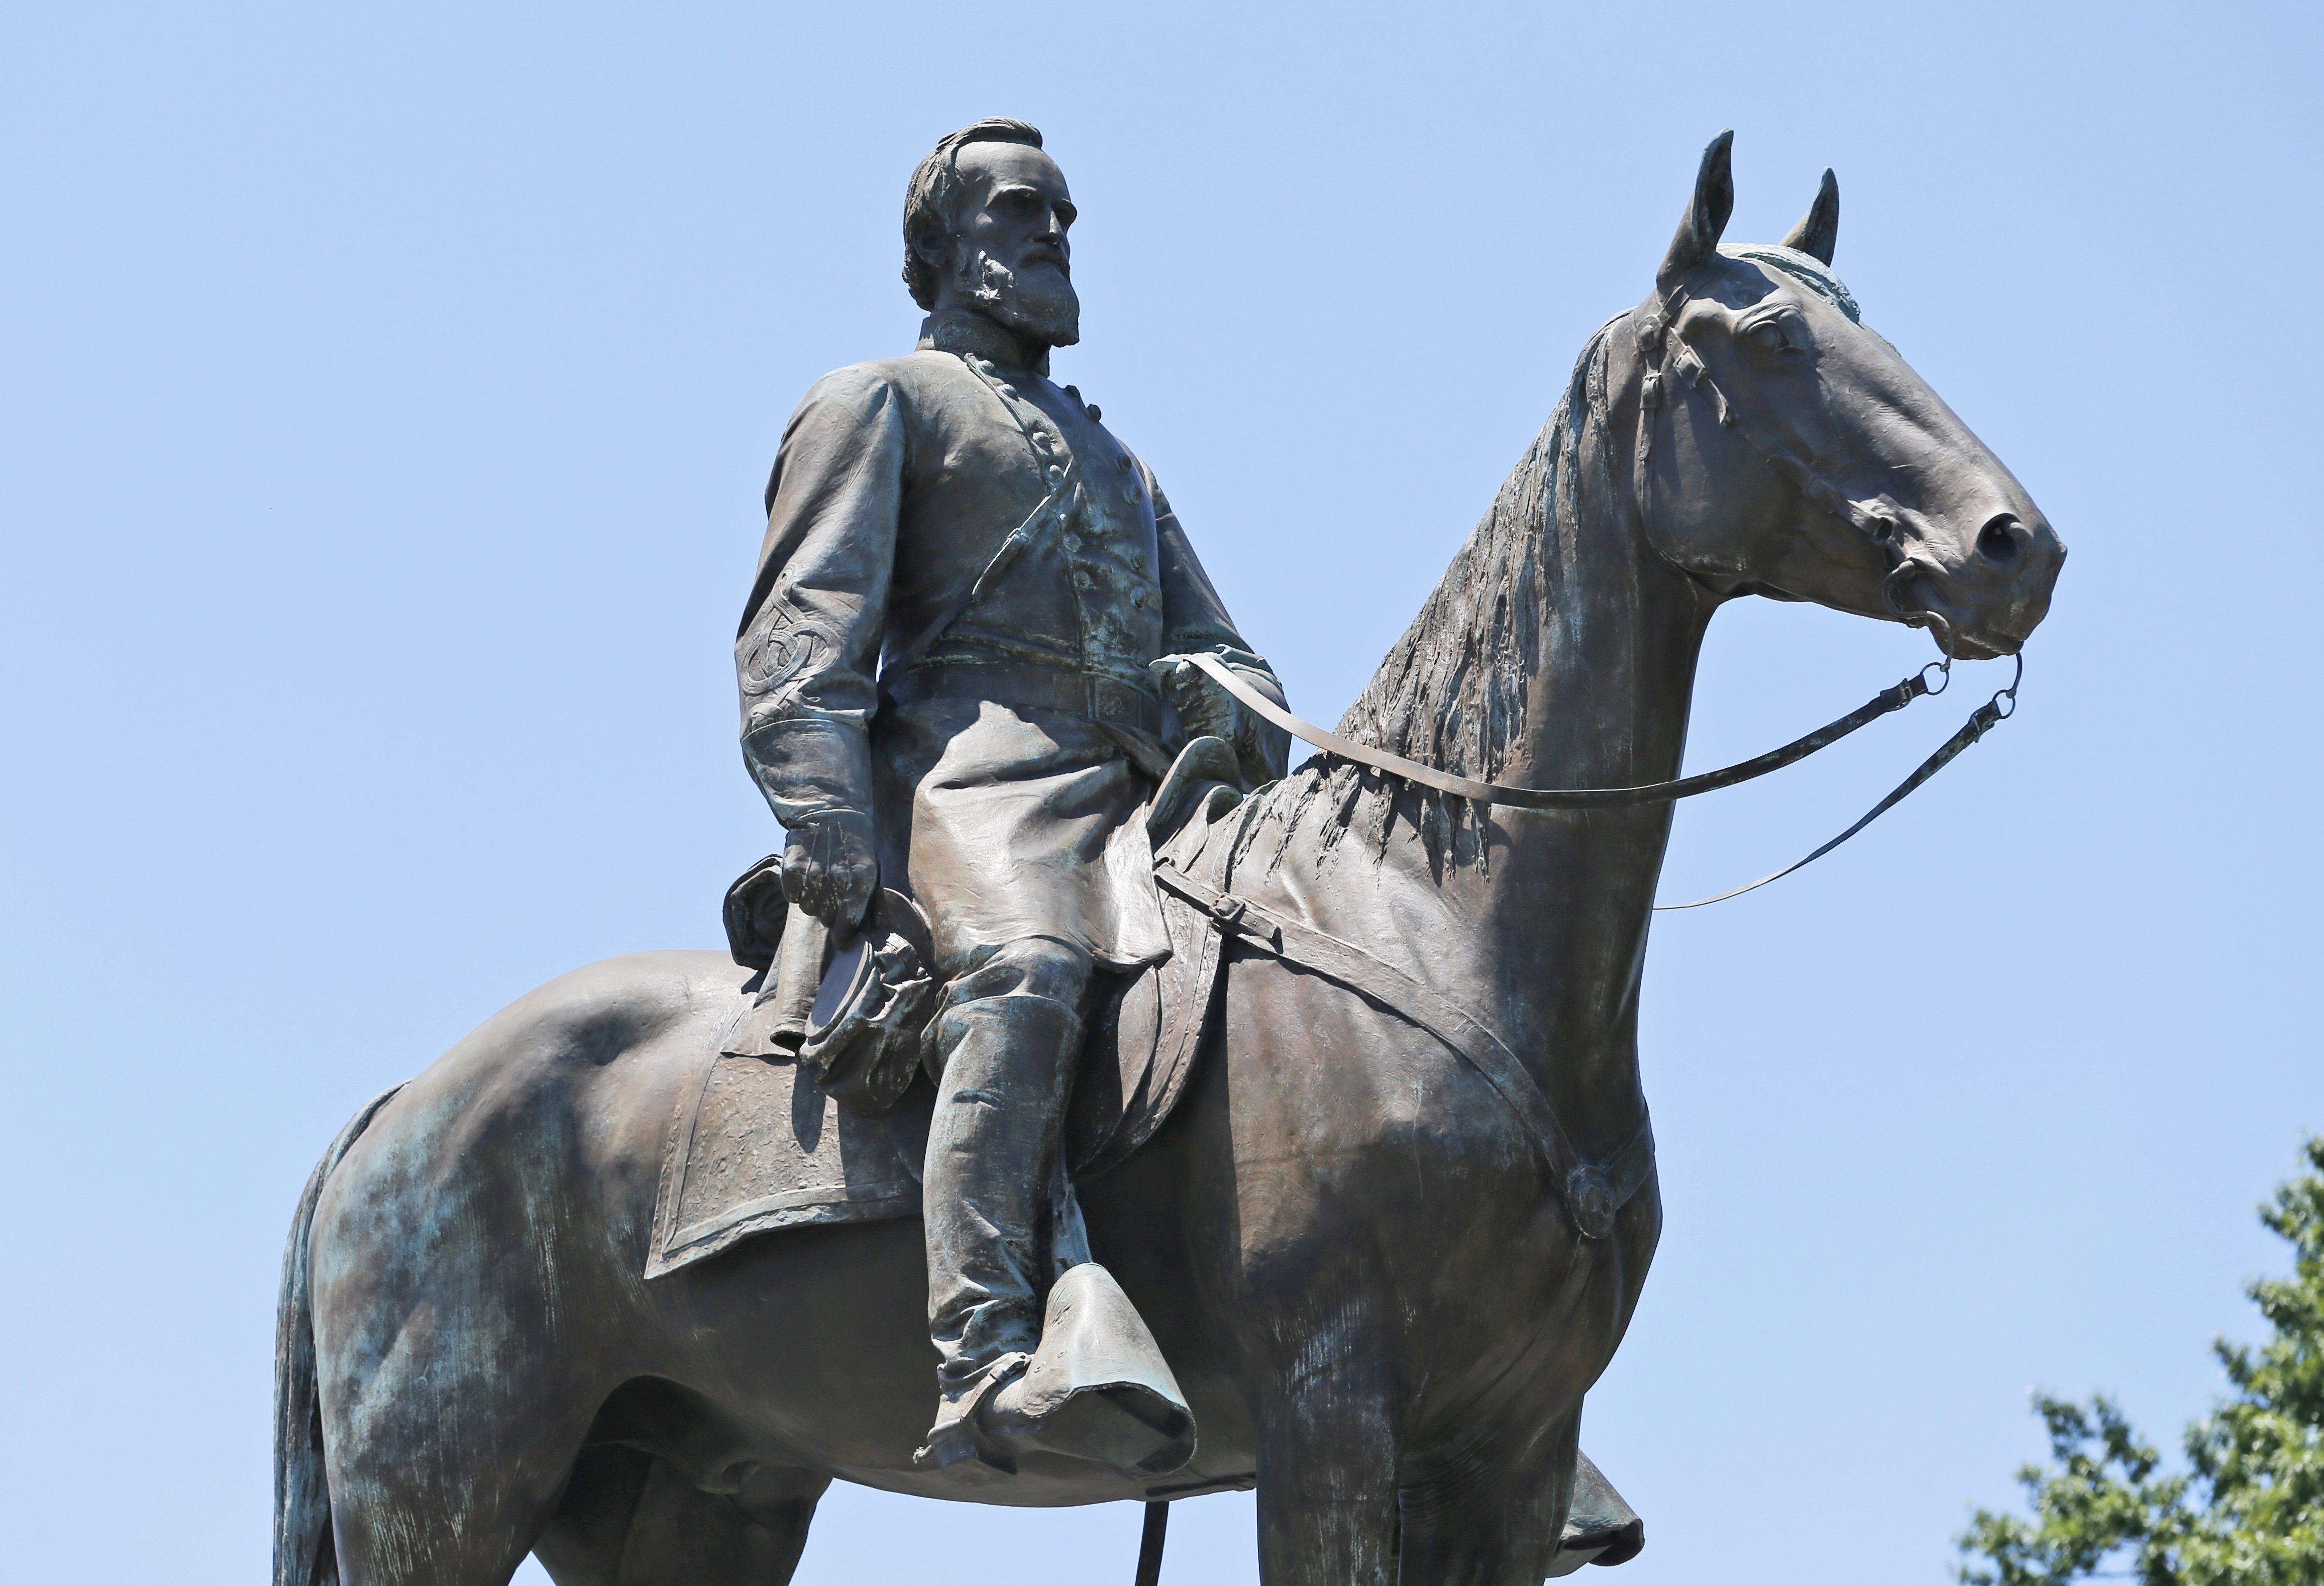 New Orleans Mayor Mitch Landrieu Removing Confederate statues doesnt change history